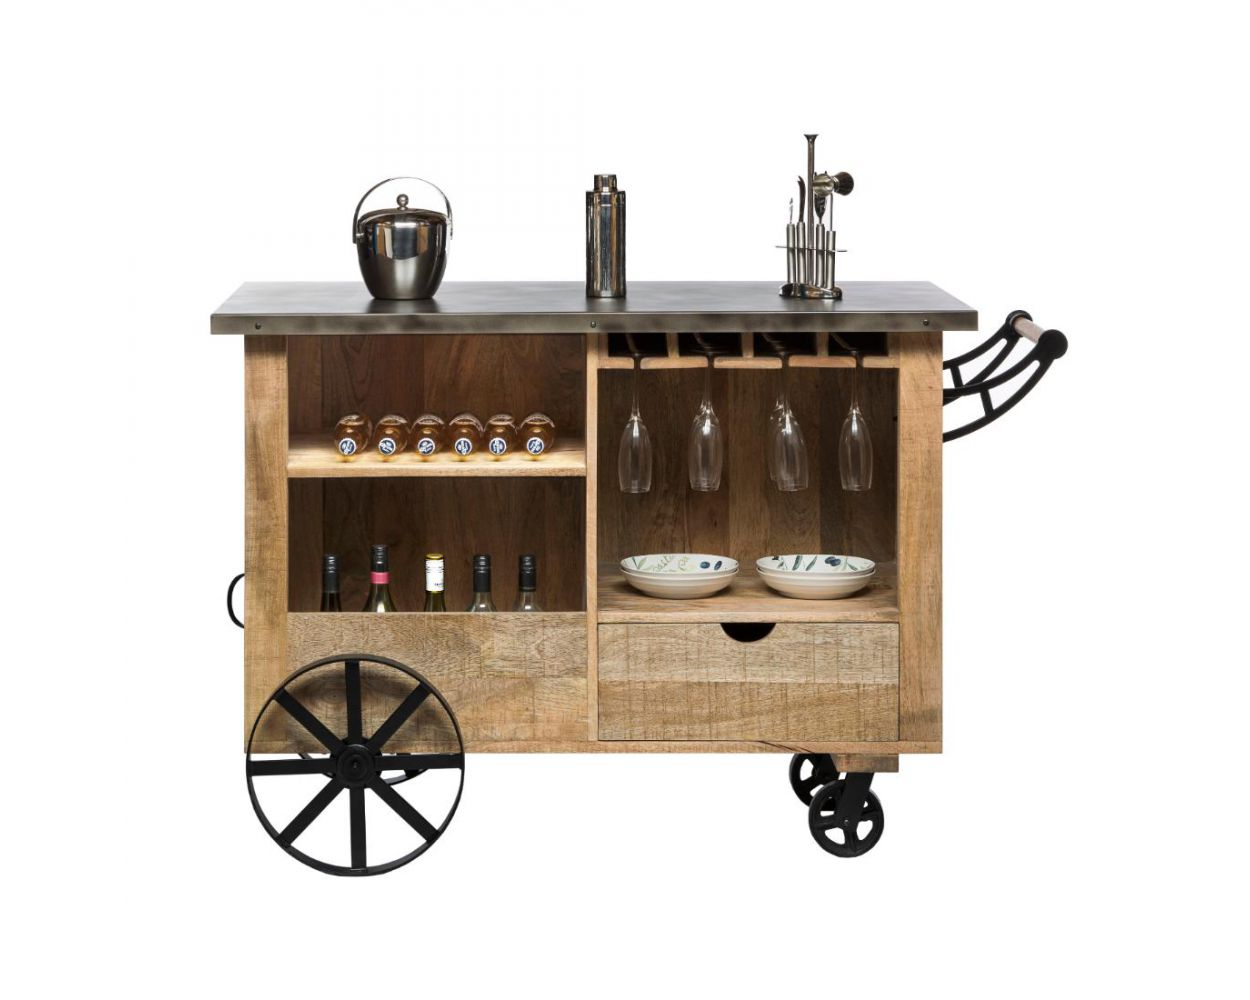 Large Industrial Bar Cart Cabinet Trolley